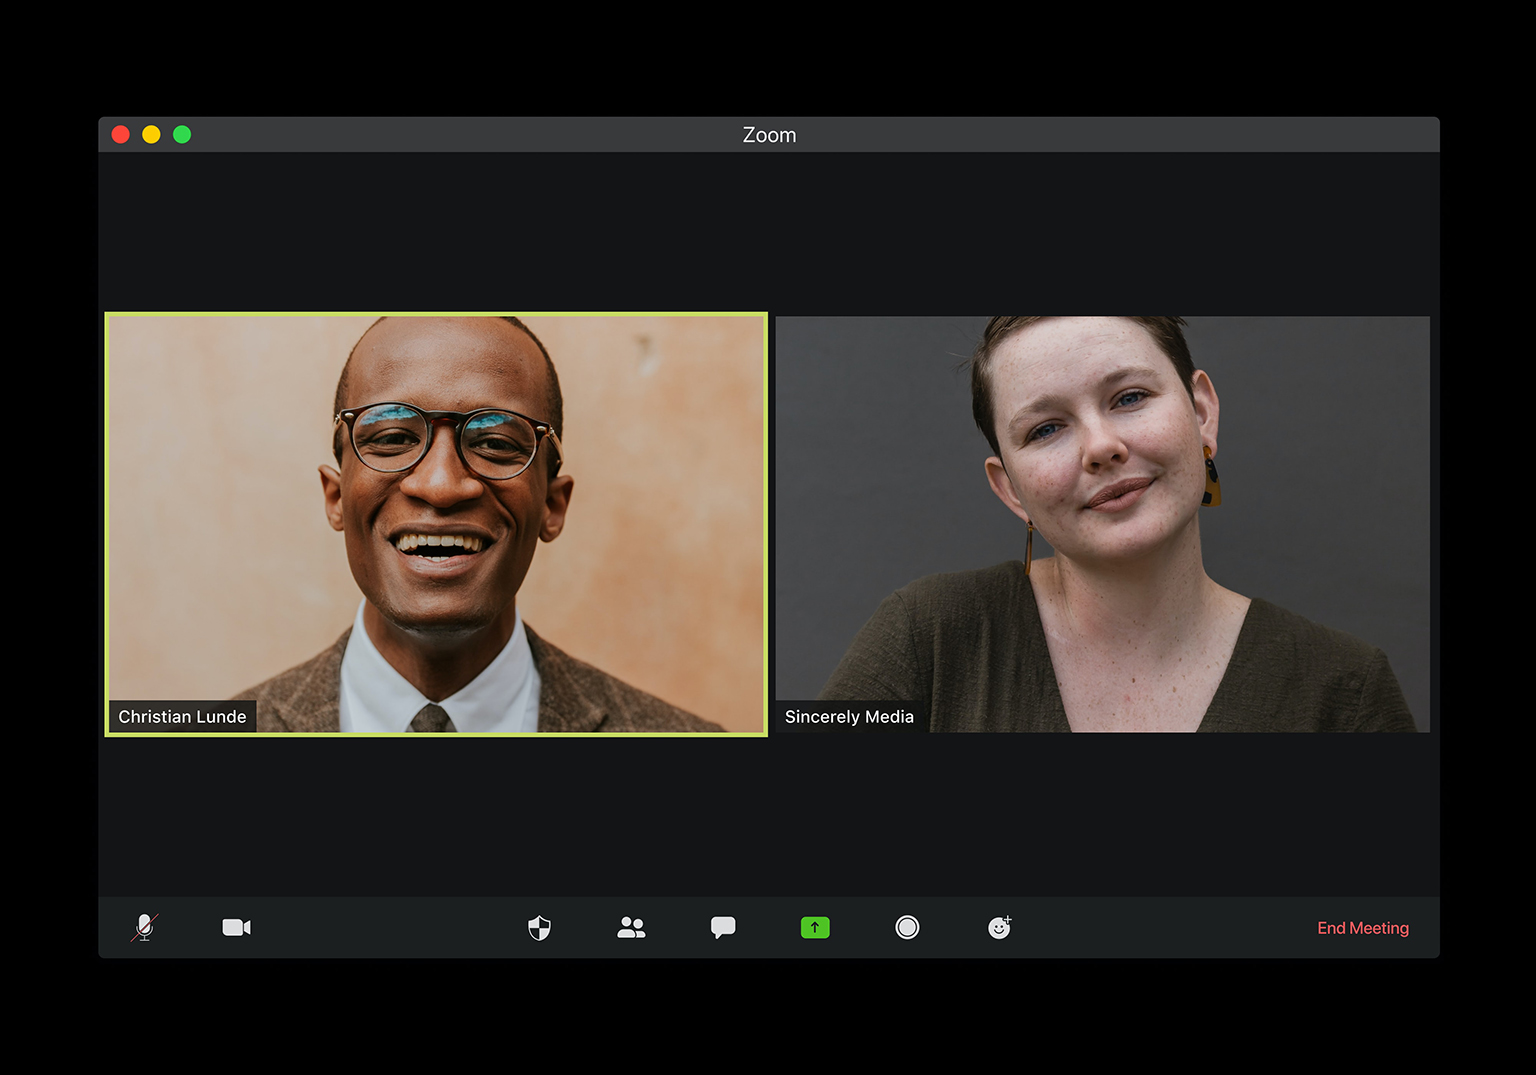 Screenshot of a two person zoom call